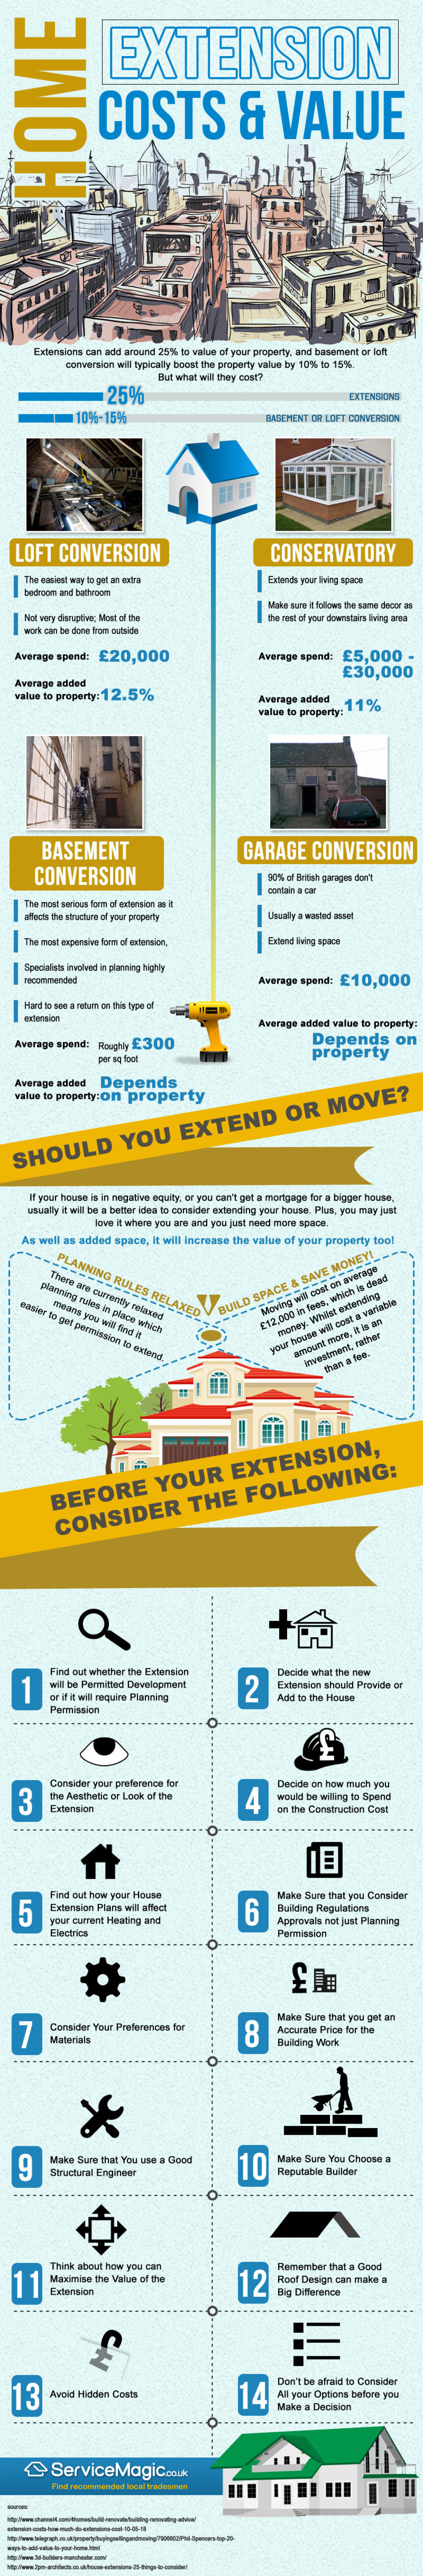 Home Extension Costs & Value Infographic